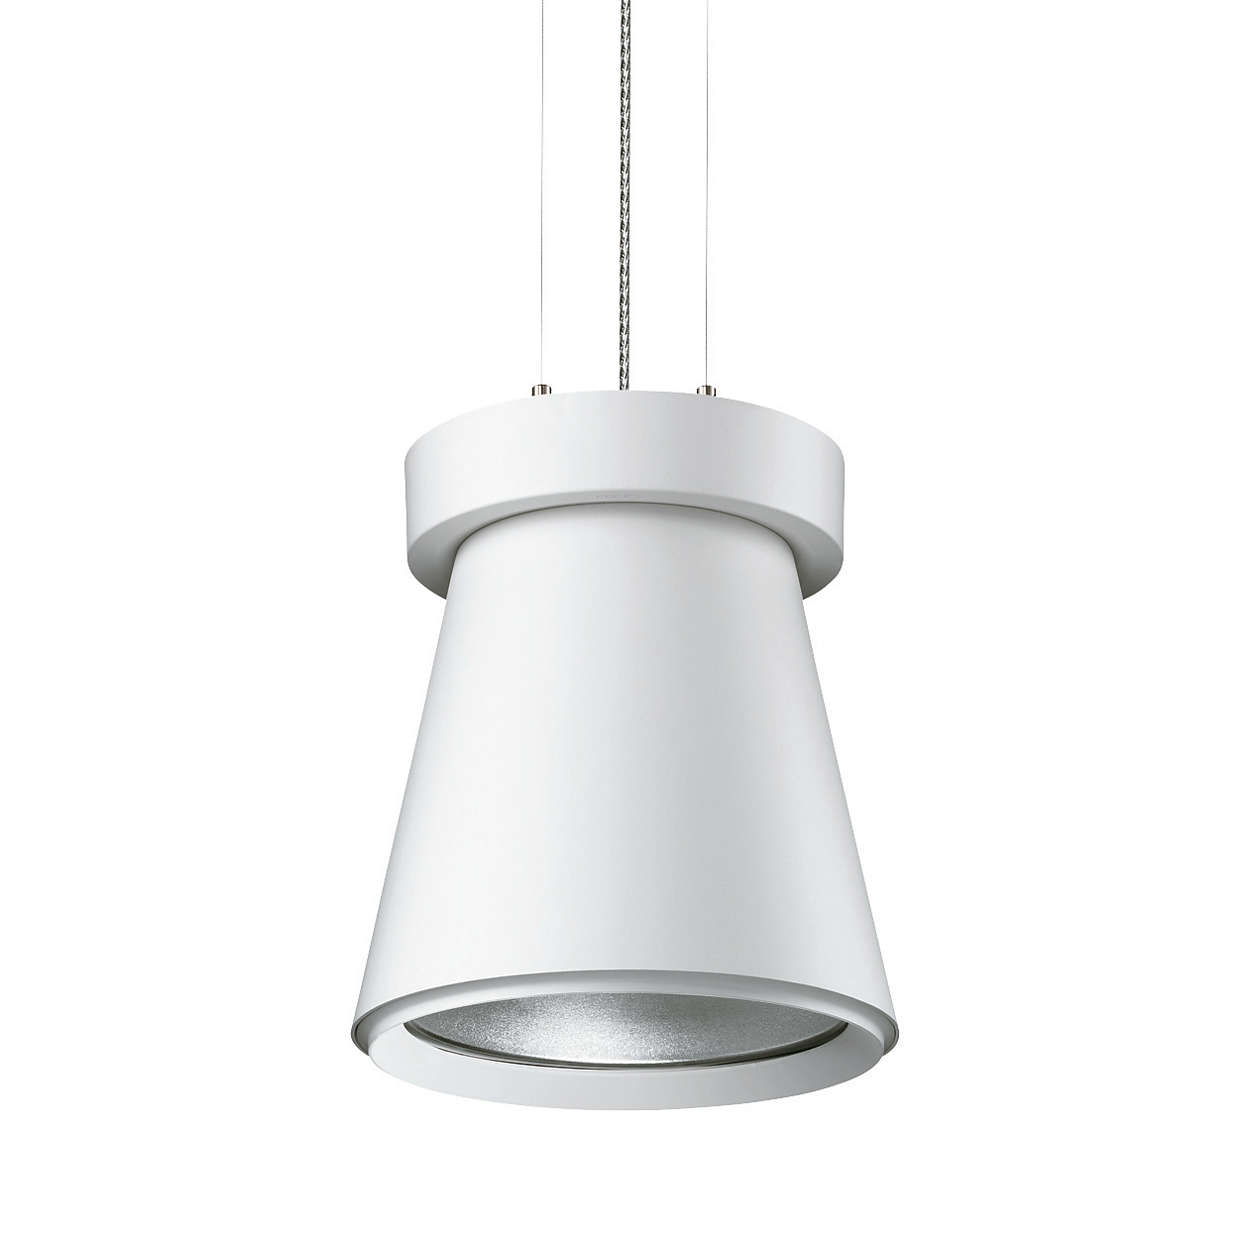 UnicOne Fresh Food LED Pendant – bring out the very best in your fresh produce